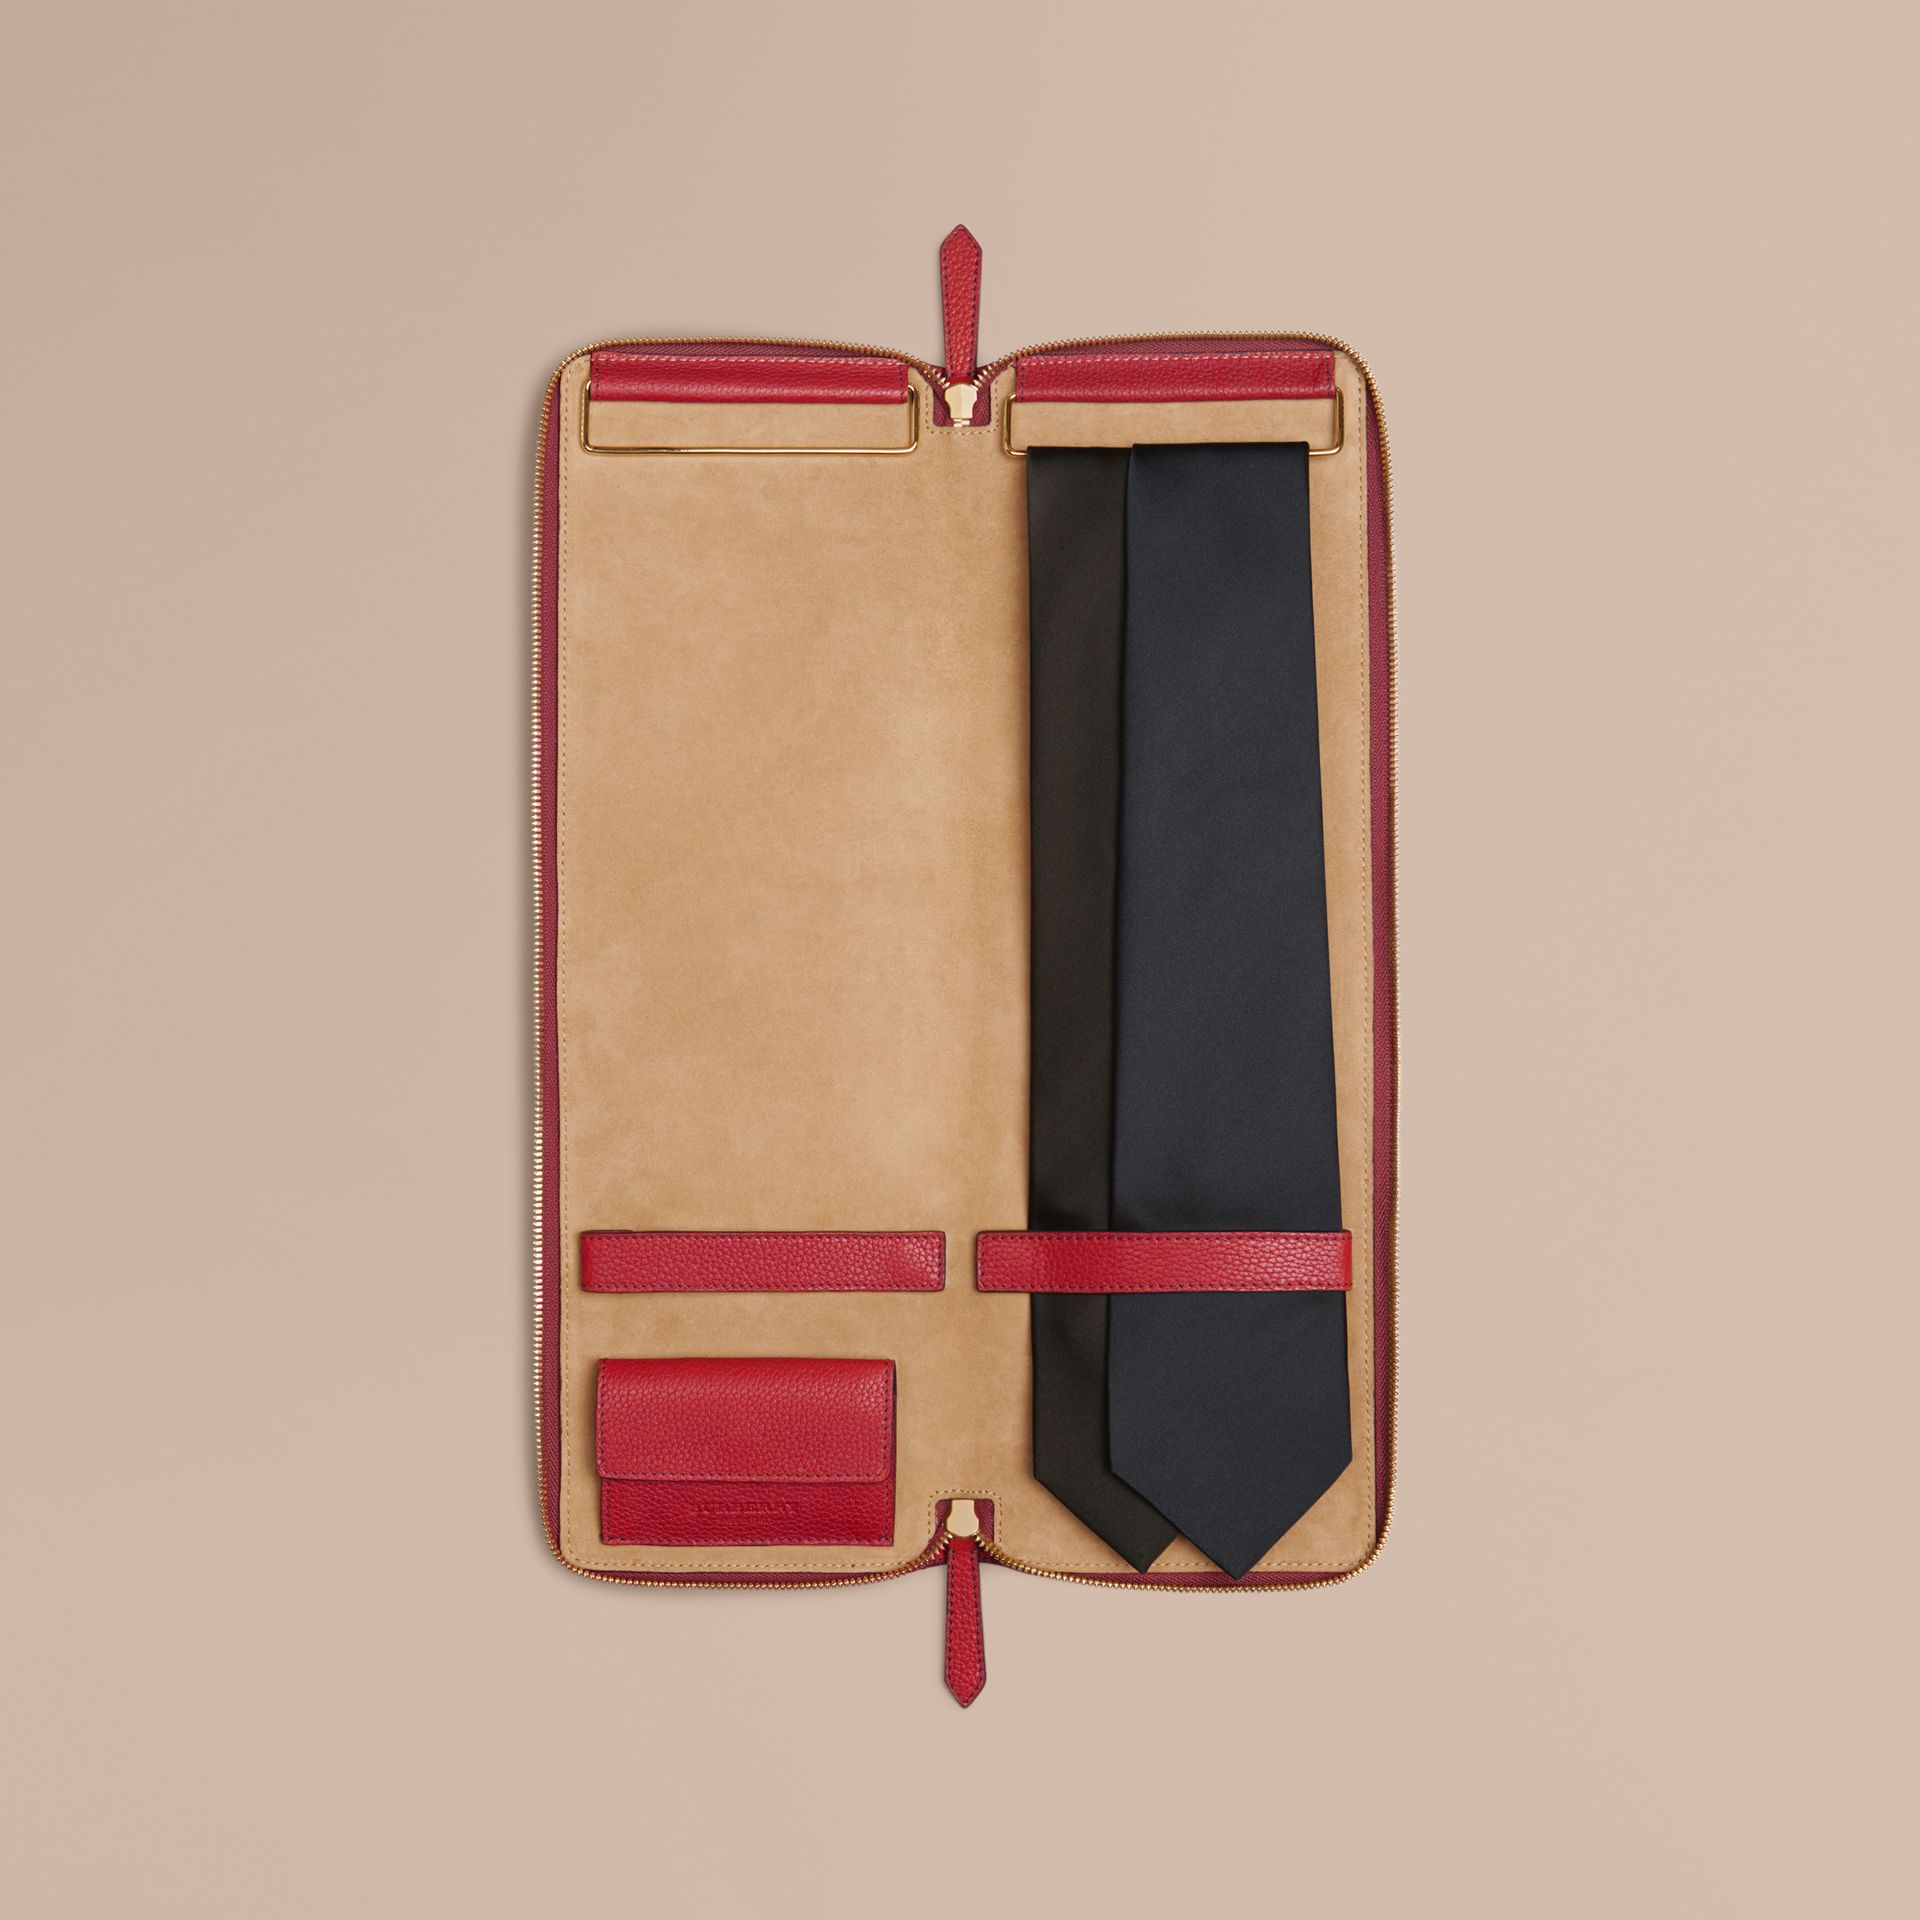 Grainy Leather Tie Case in Parade Red - Men | Burberry Australia - gallery image 1